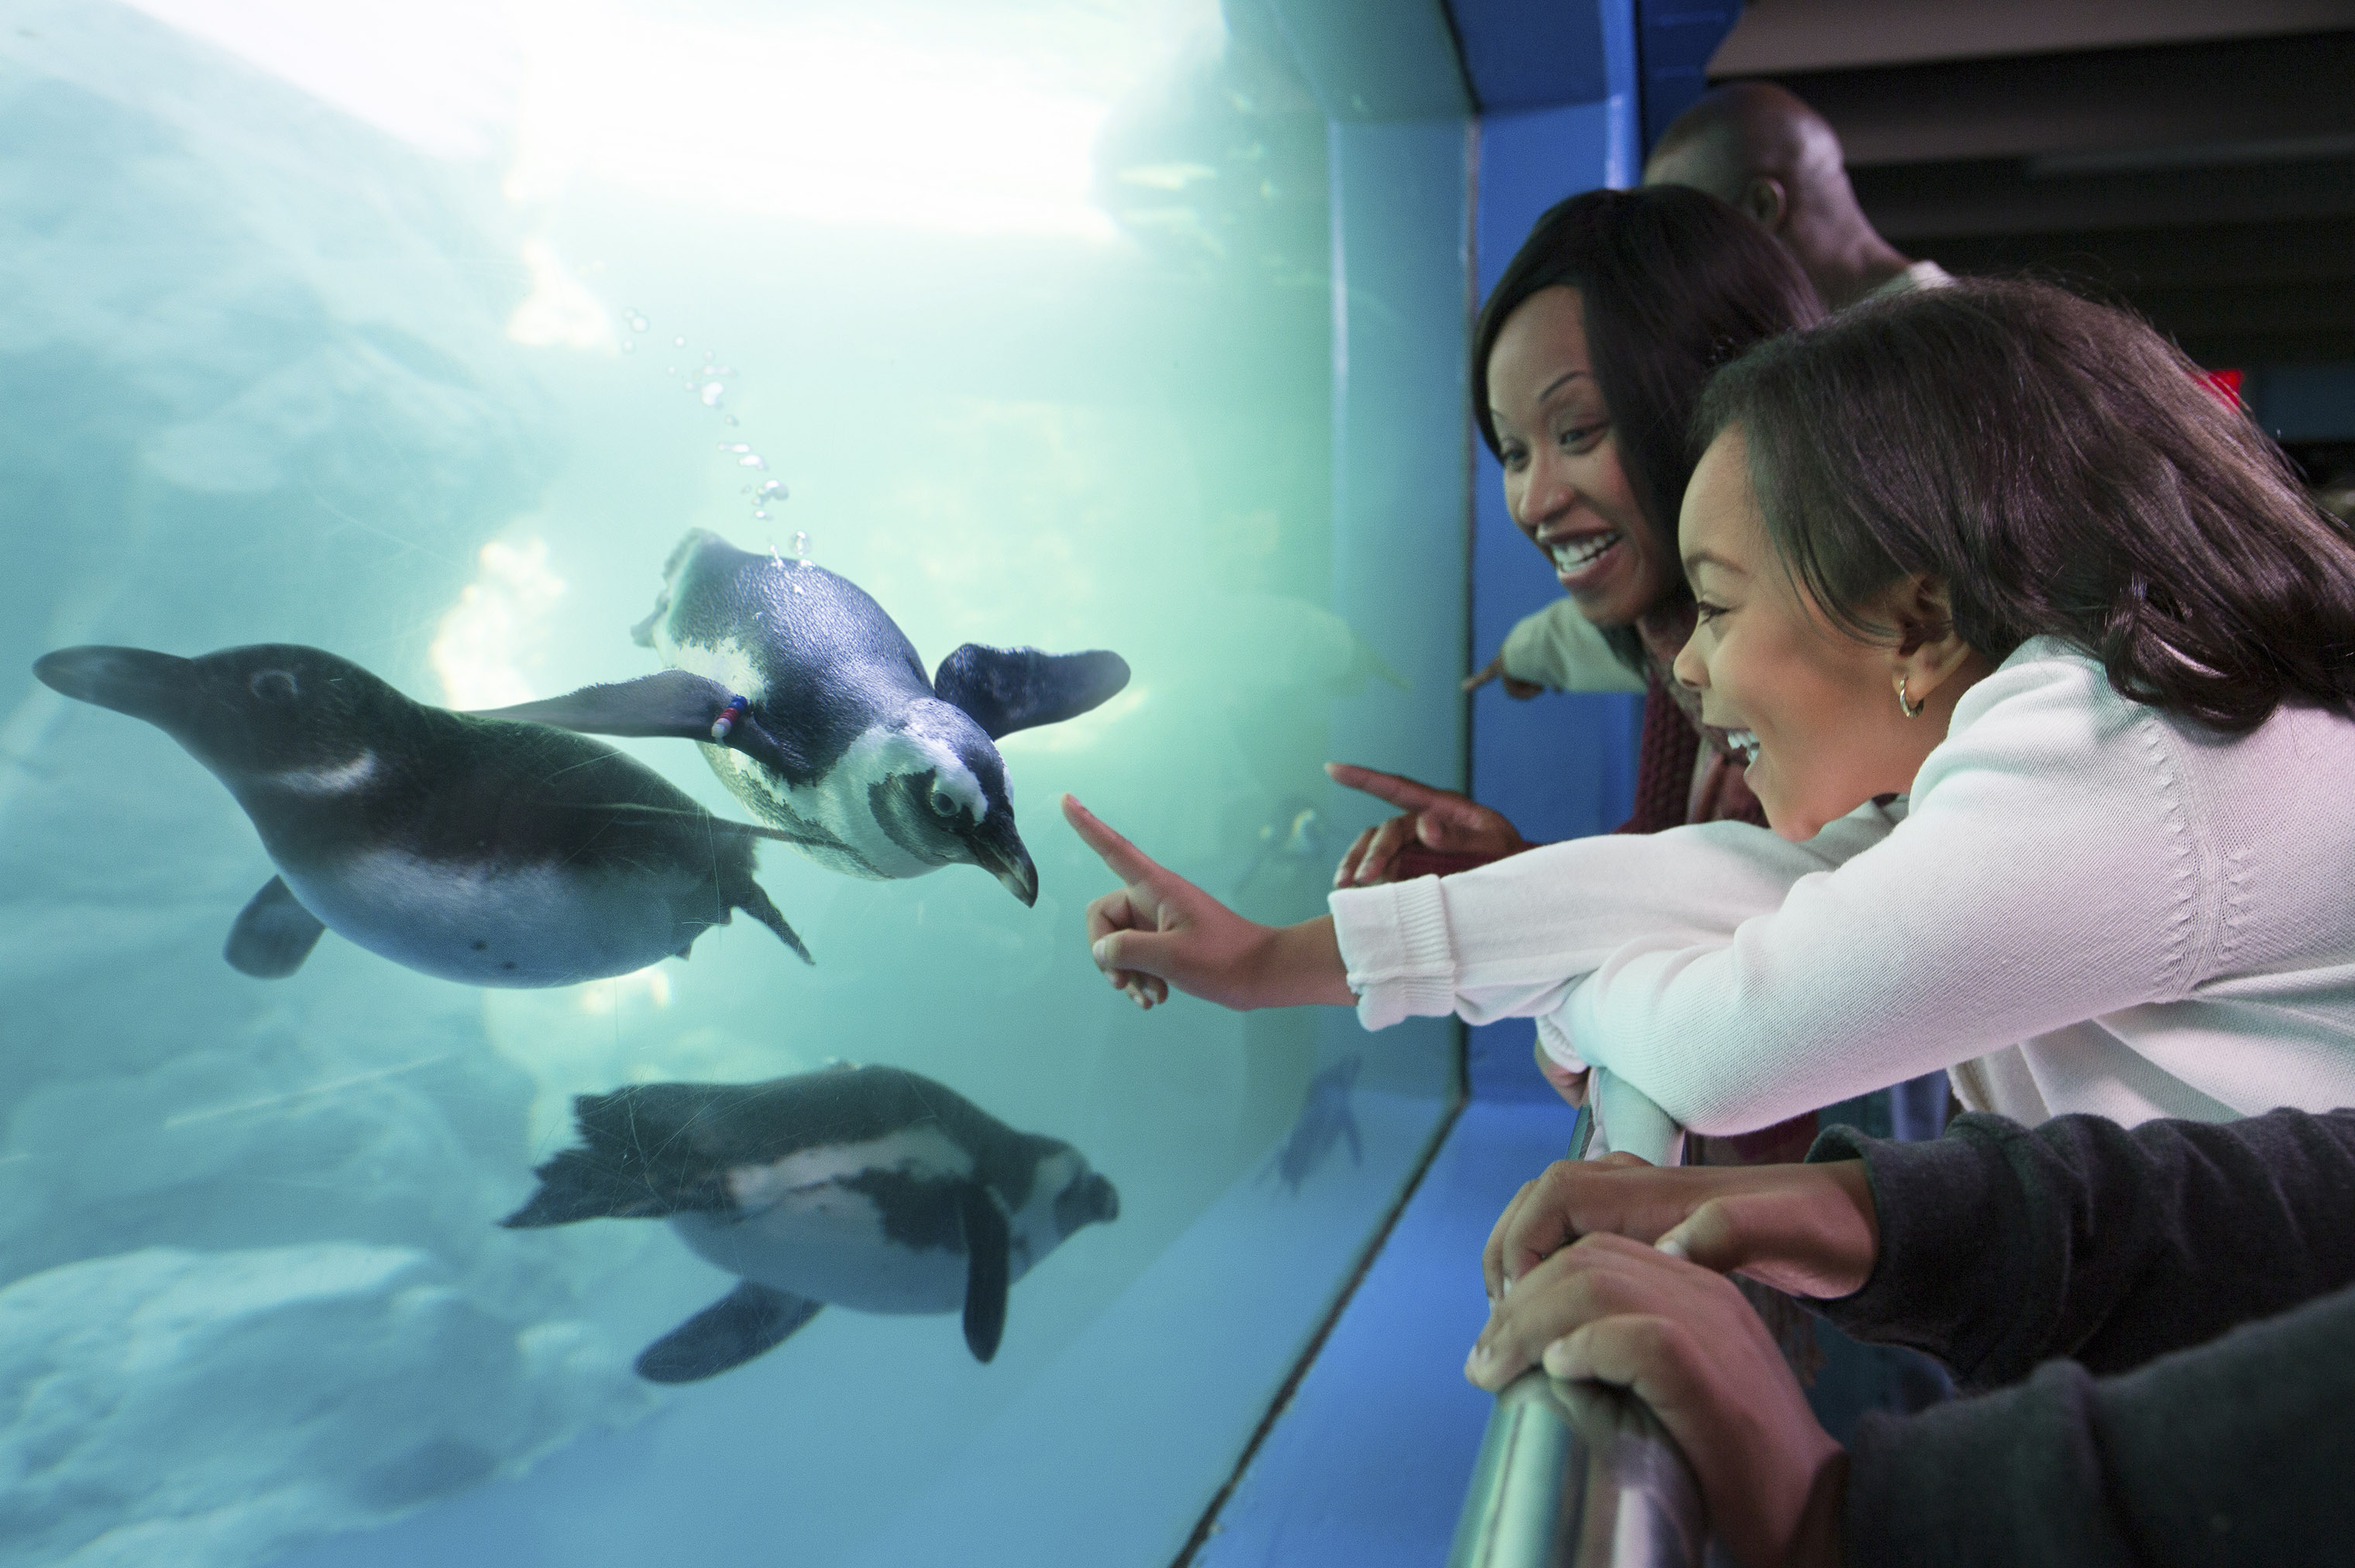 Visitors can meet wildlife up close at the national- award-winning Mystic Aquarium.